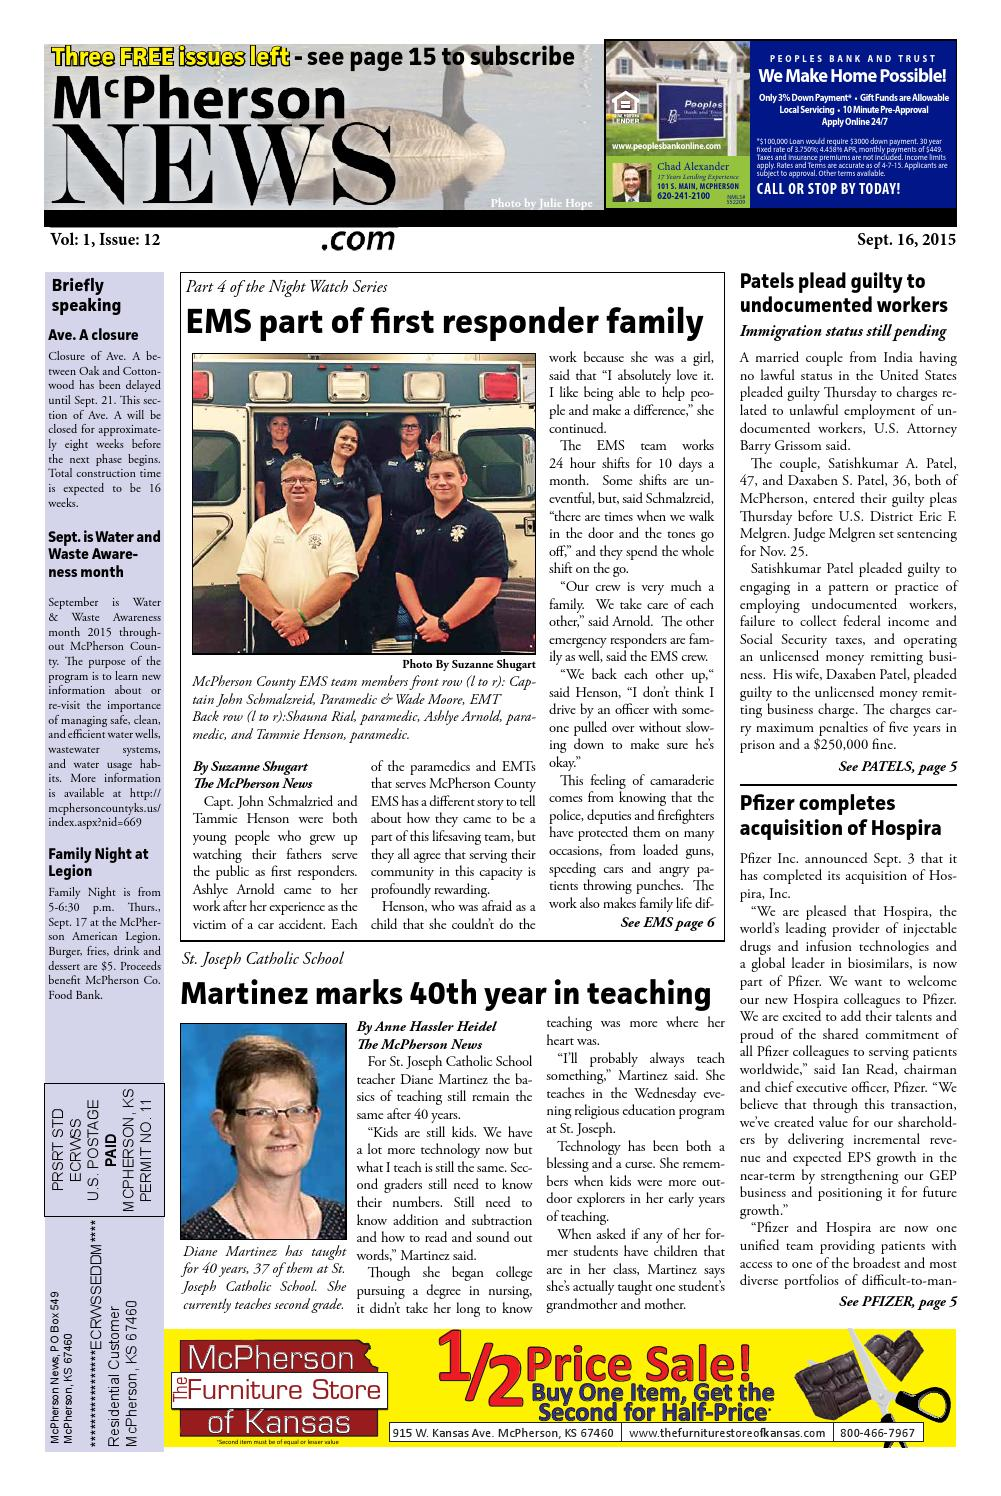 9 16 mcpherson news by Anne Hassler - issuu